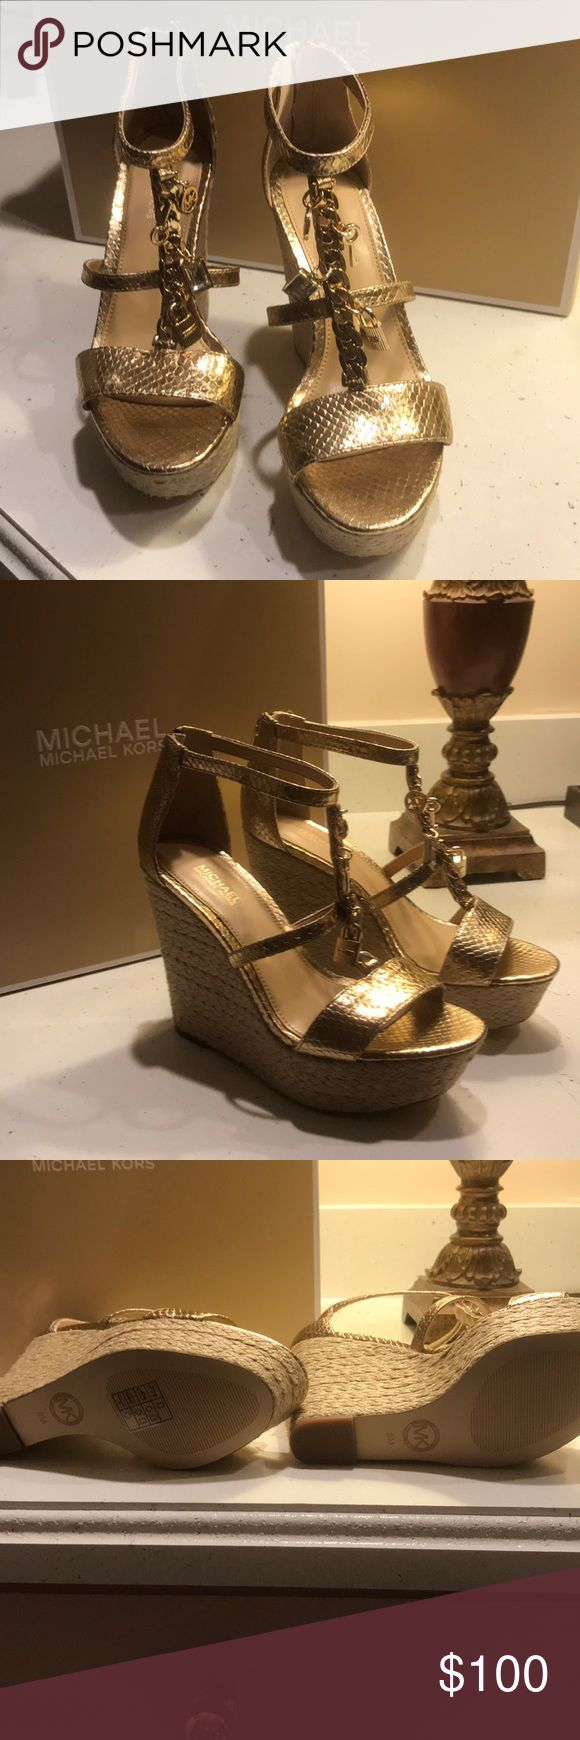 Michael Kors wedge sandals metallic gold Brand new with box Michel Kors sandals with charms Shoes Wedges